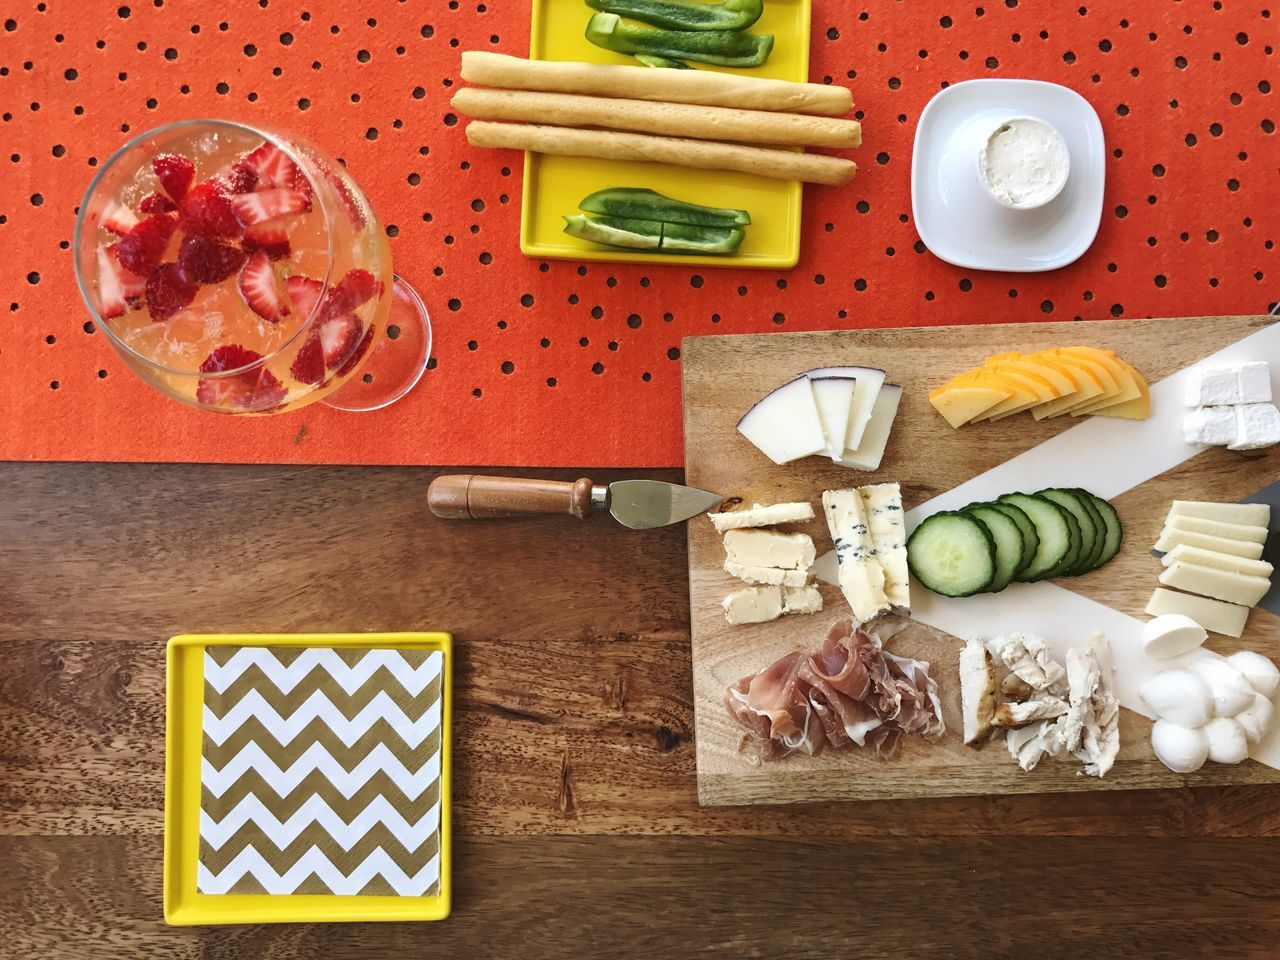 Directly Above Healthy Eating Food Vegetable SLICE Food And Drink Freshness Indoors  Cutting Board No People Cucumber Variation Table Ready-to-eat Day